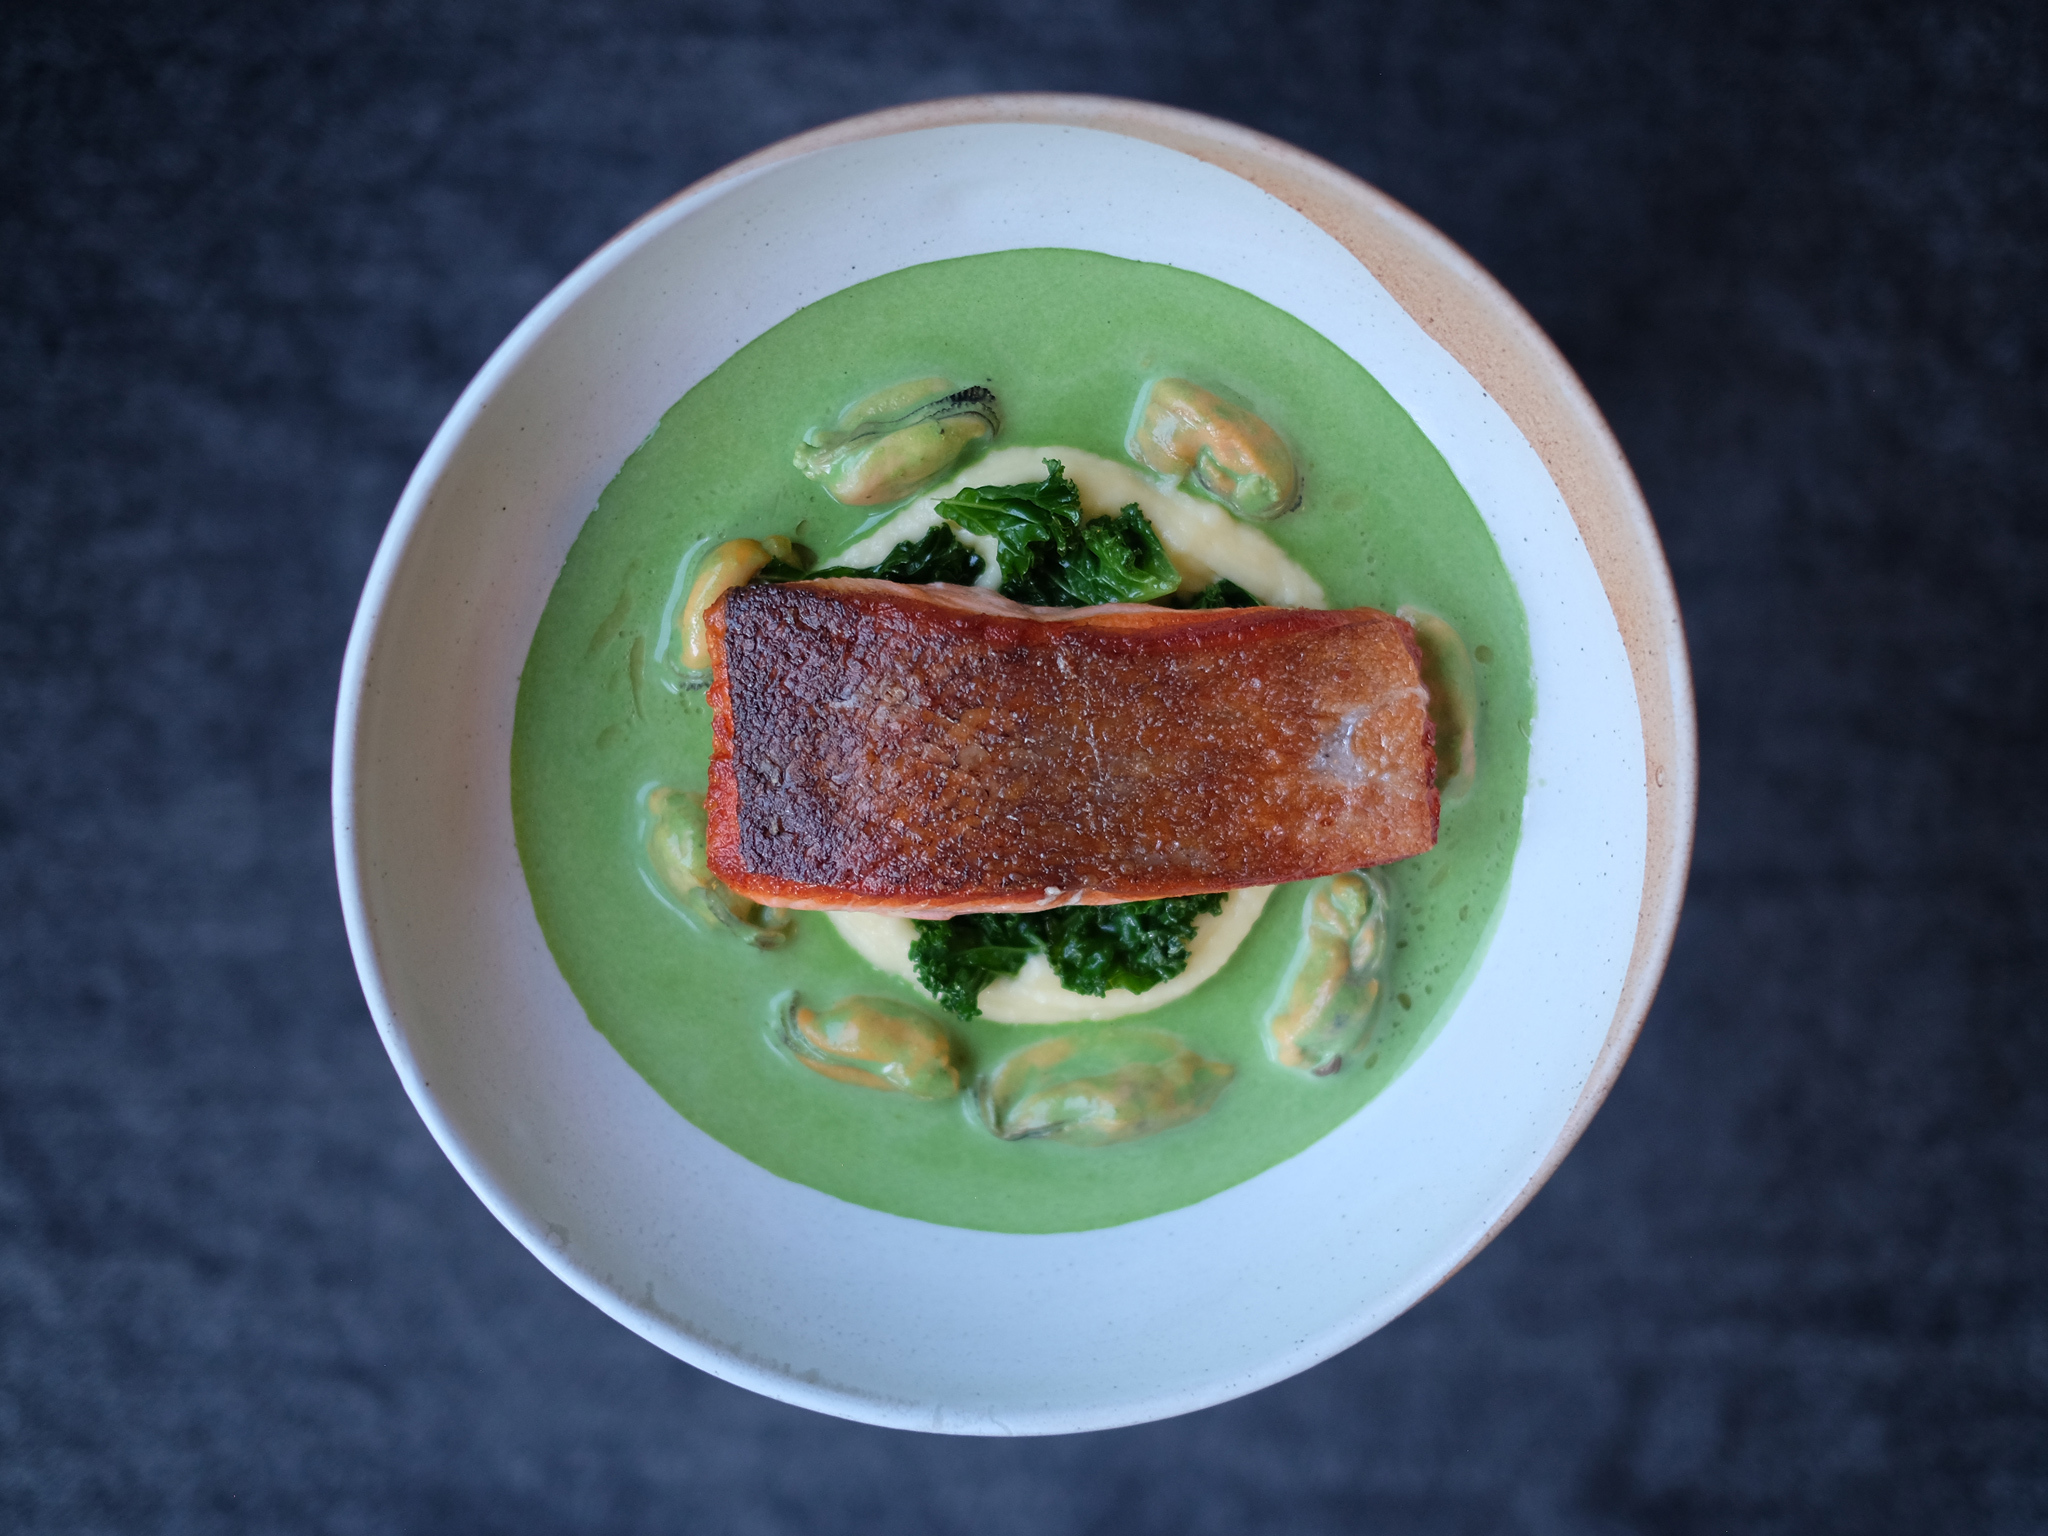 A main course of salmon at the Little Chartroom